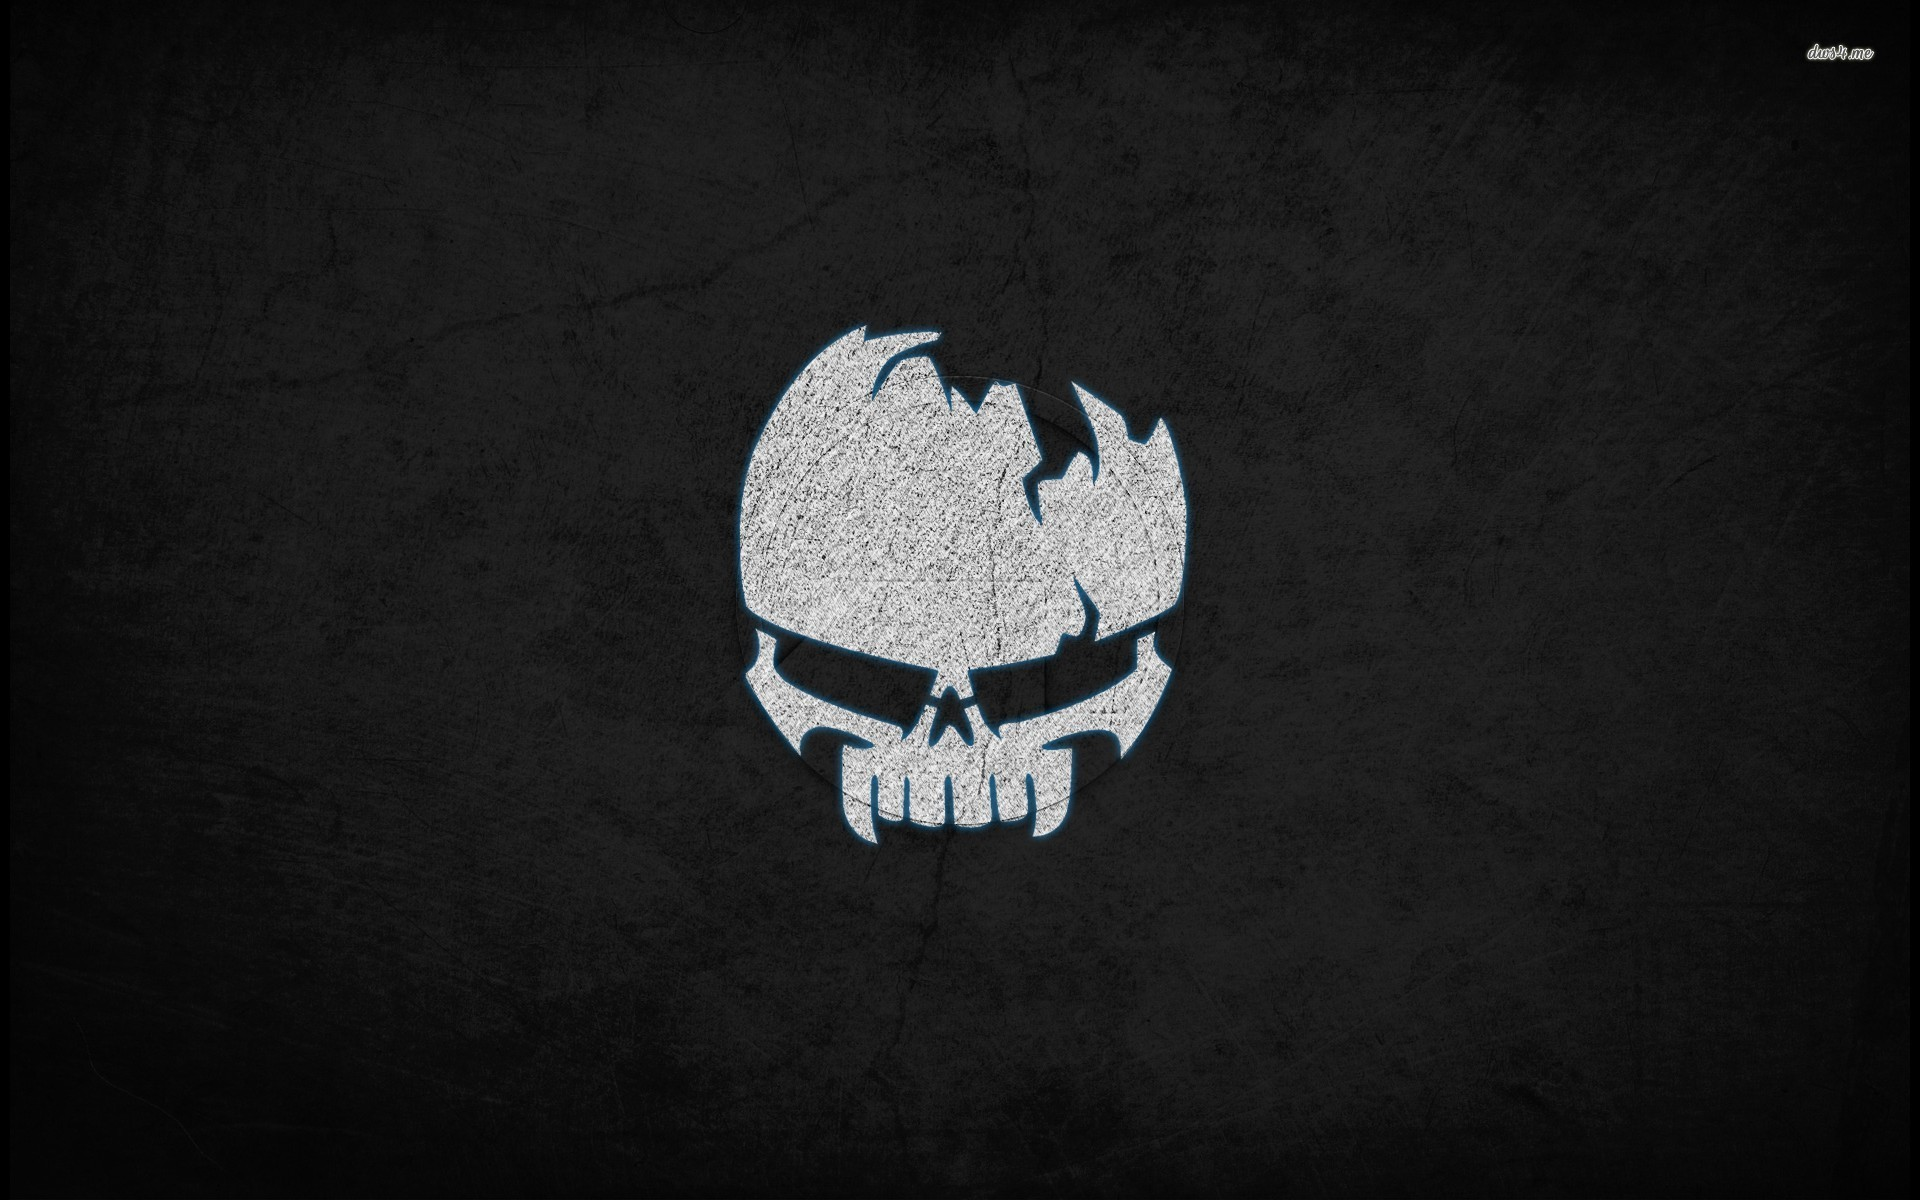 Skull Wallpapers High Quality Download 1920x1200